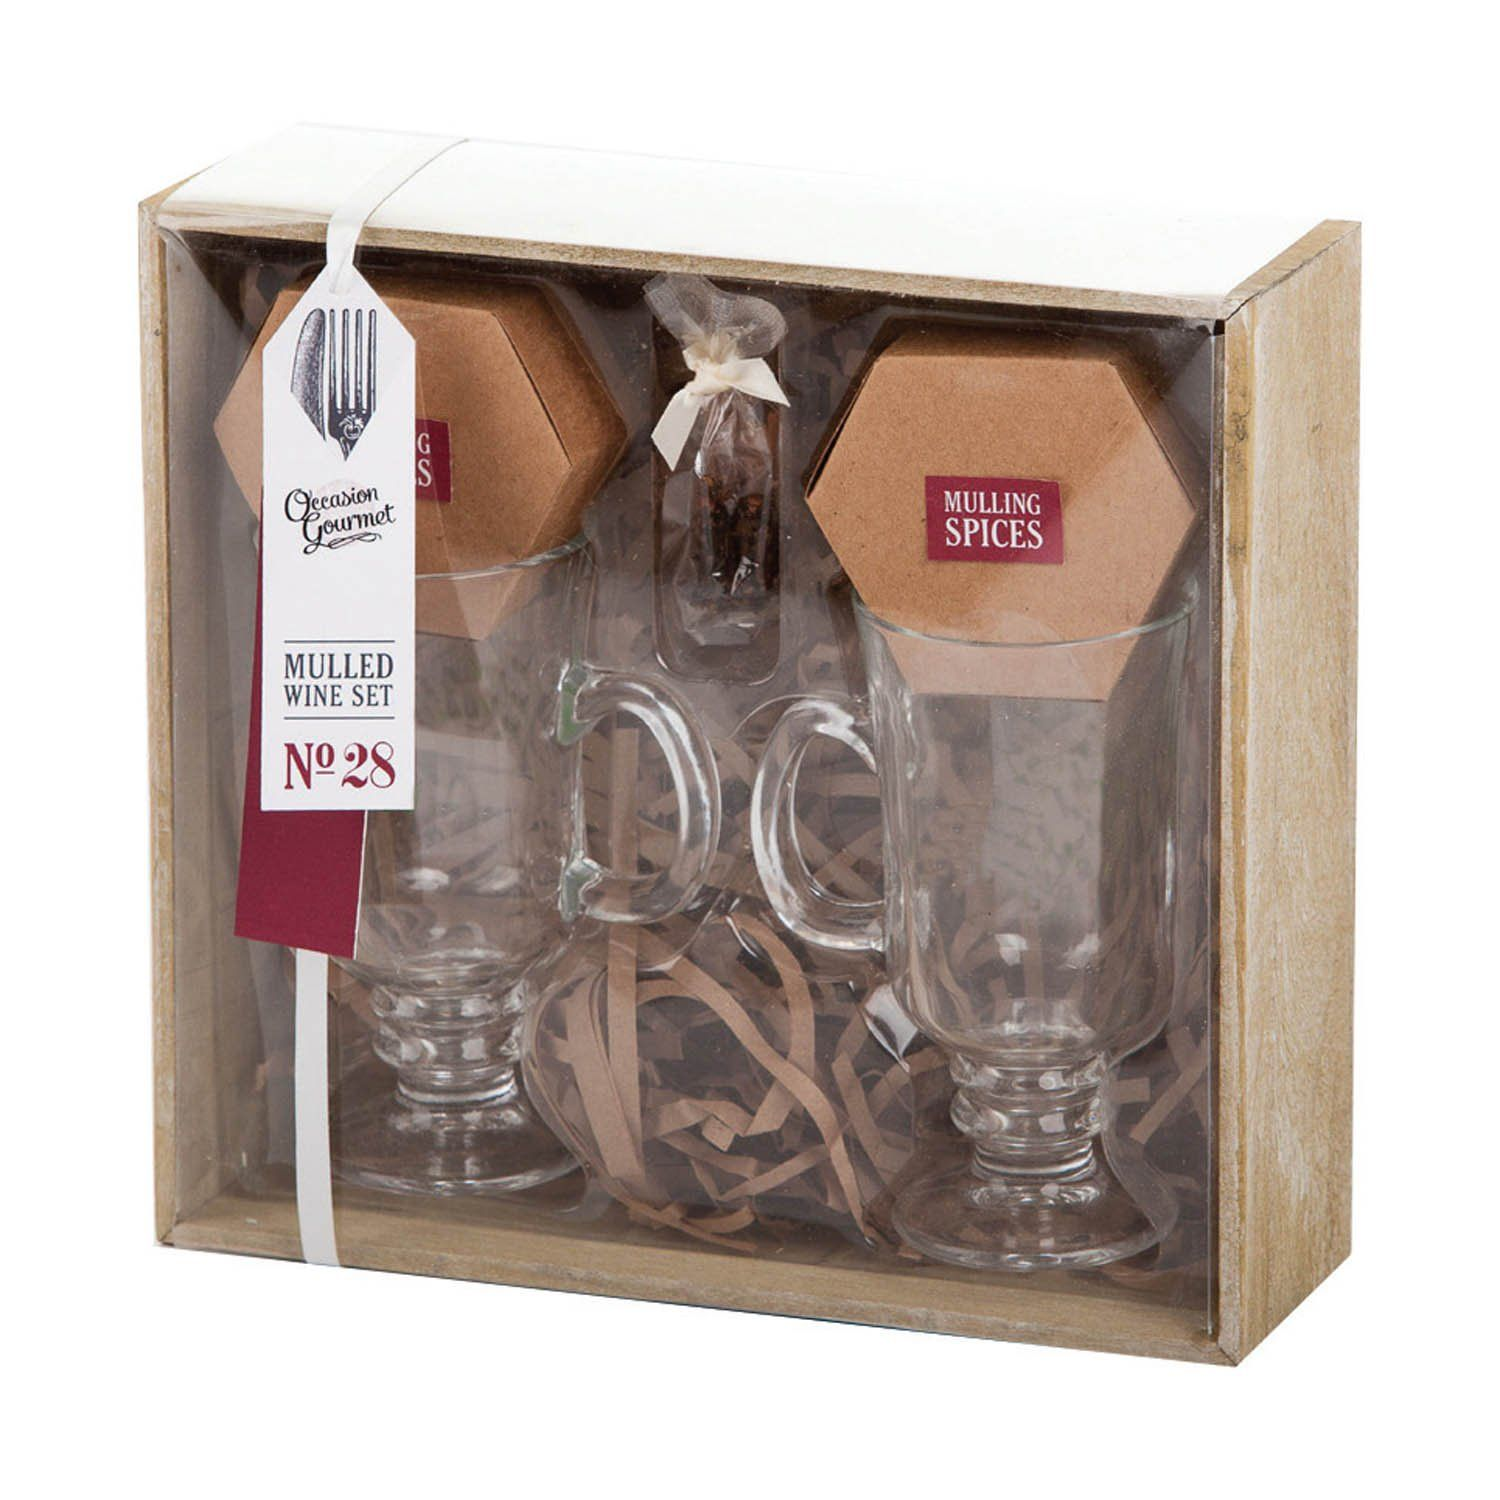 Mulled Wine Gift Set for Two with Spices in Wooden Gift